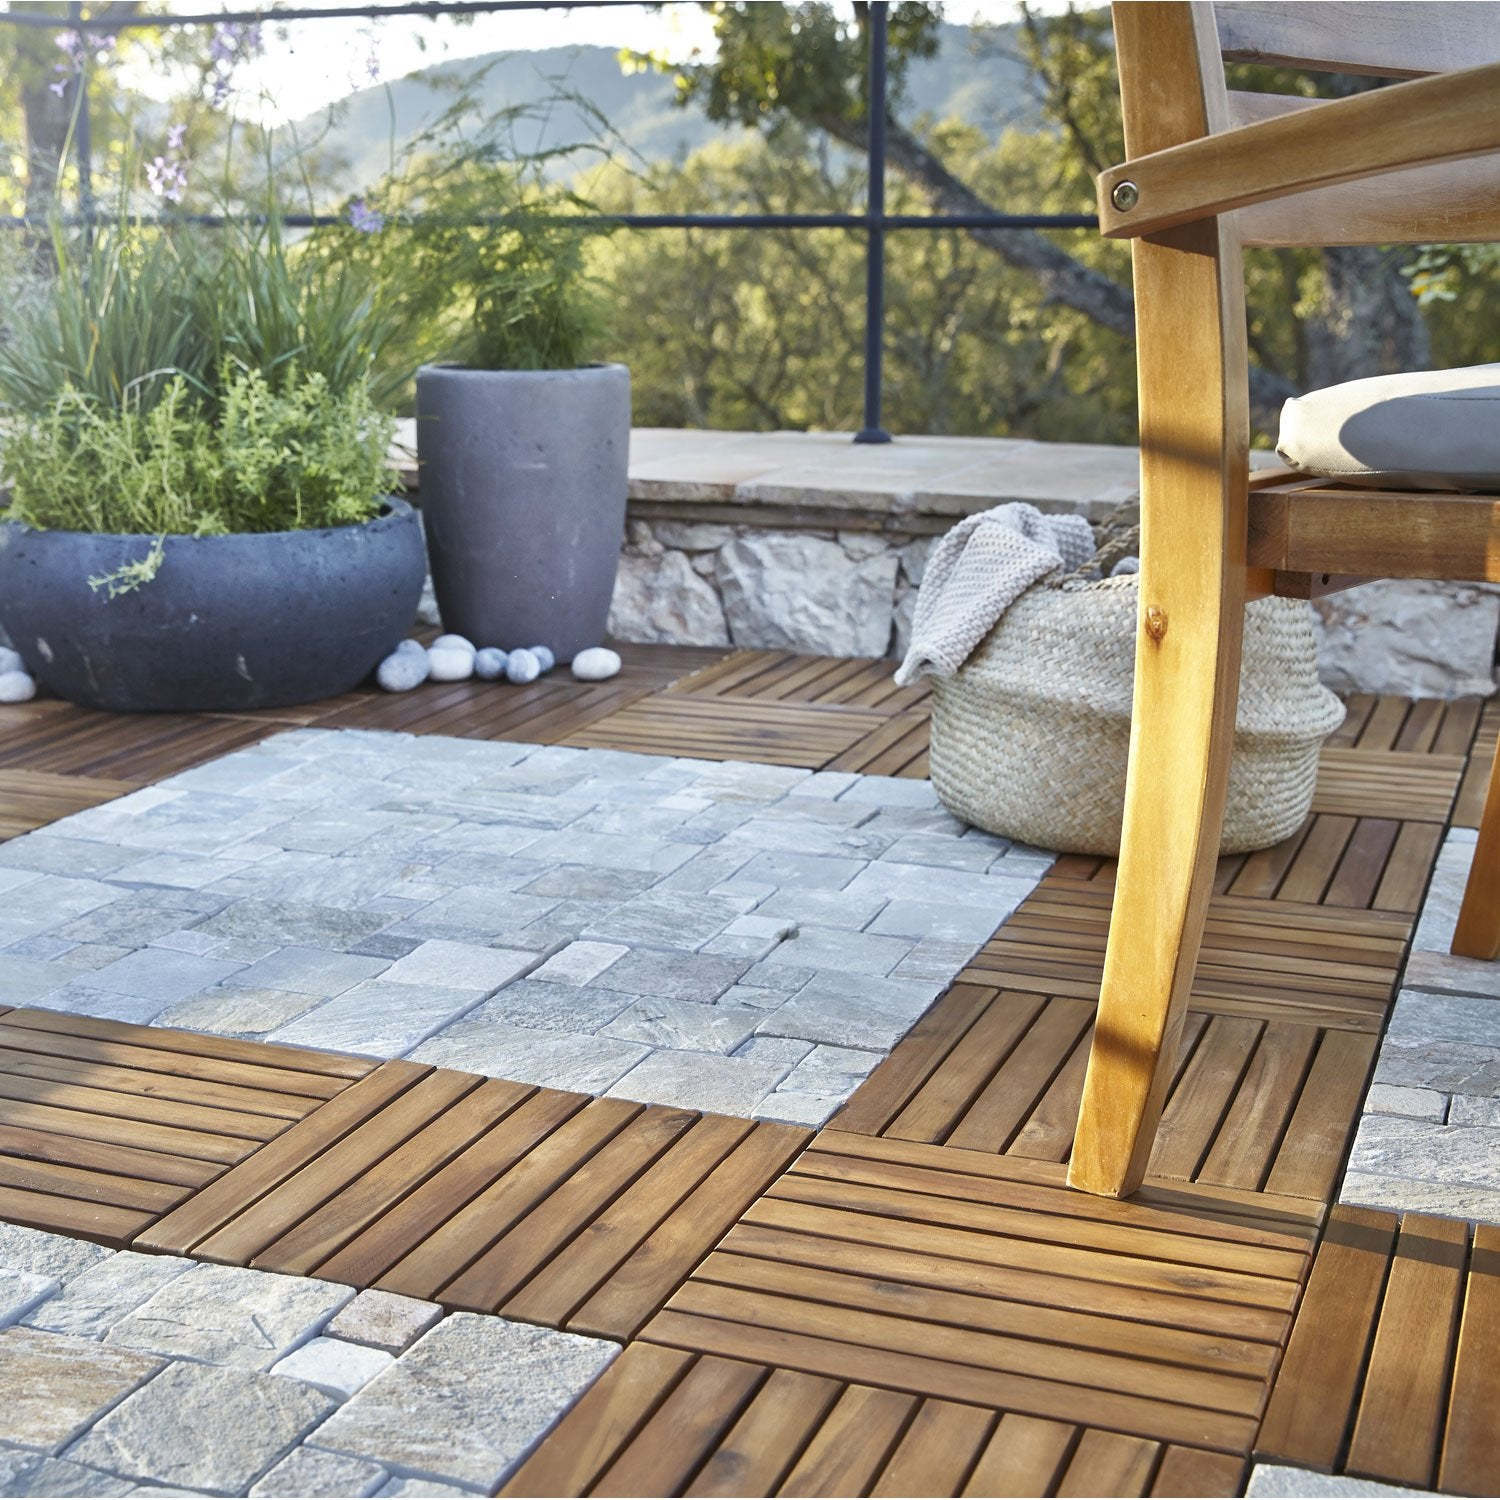 Dalle clipsable bois marron naturel x cm x mm leroy merlin - Dalle bois terrasse 50x50 ...